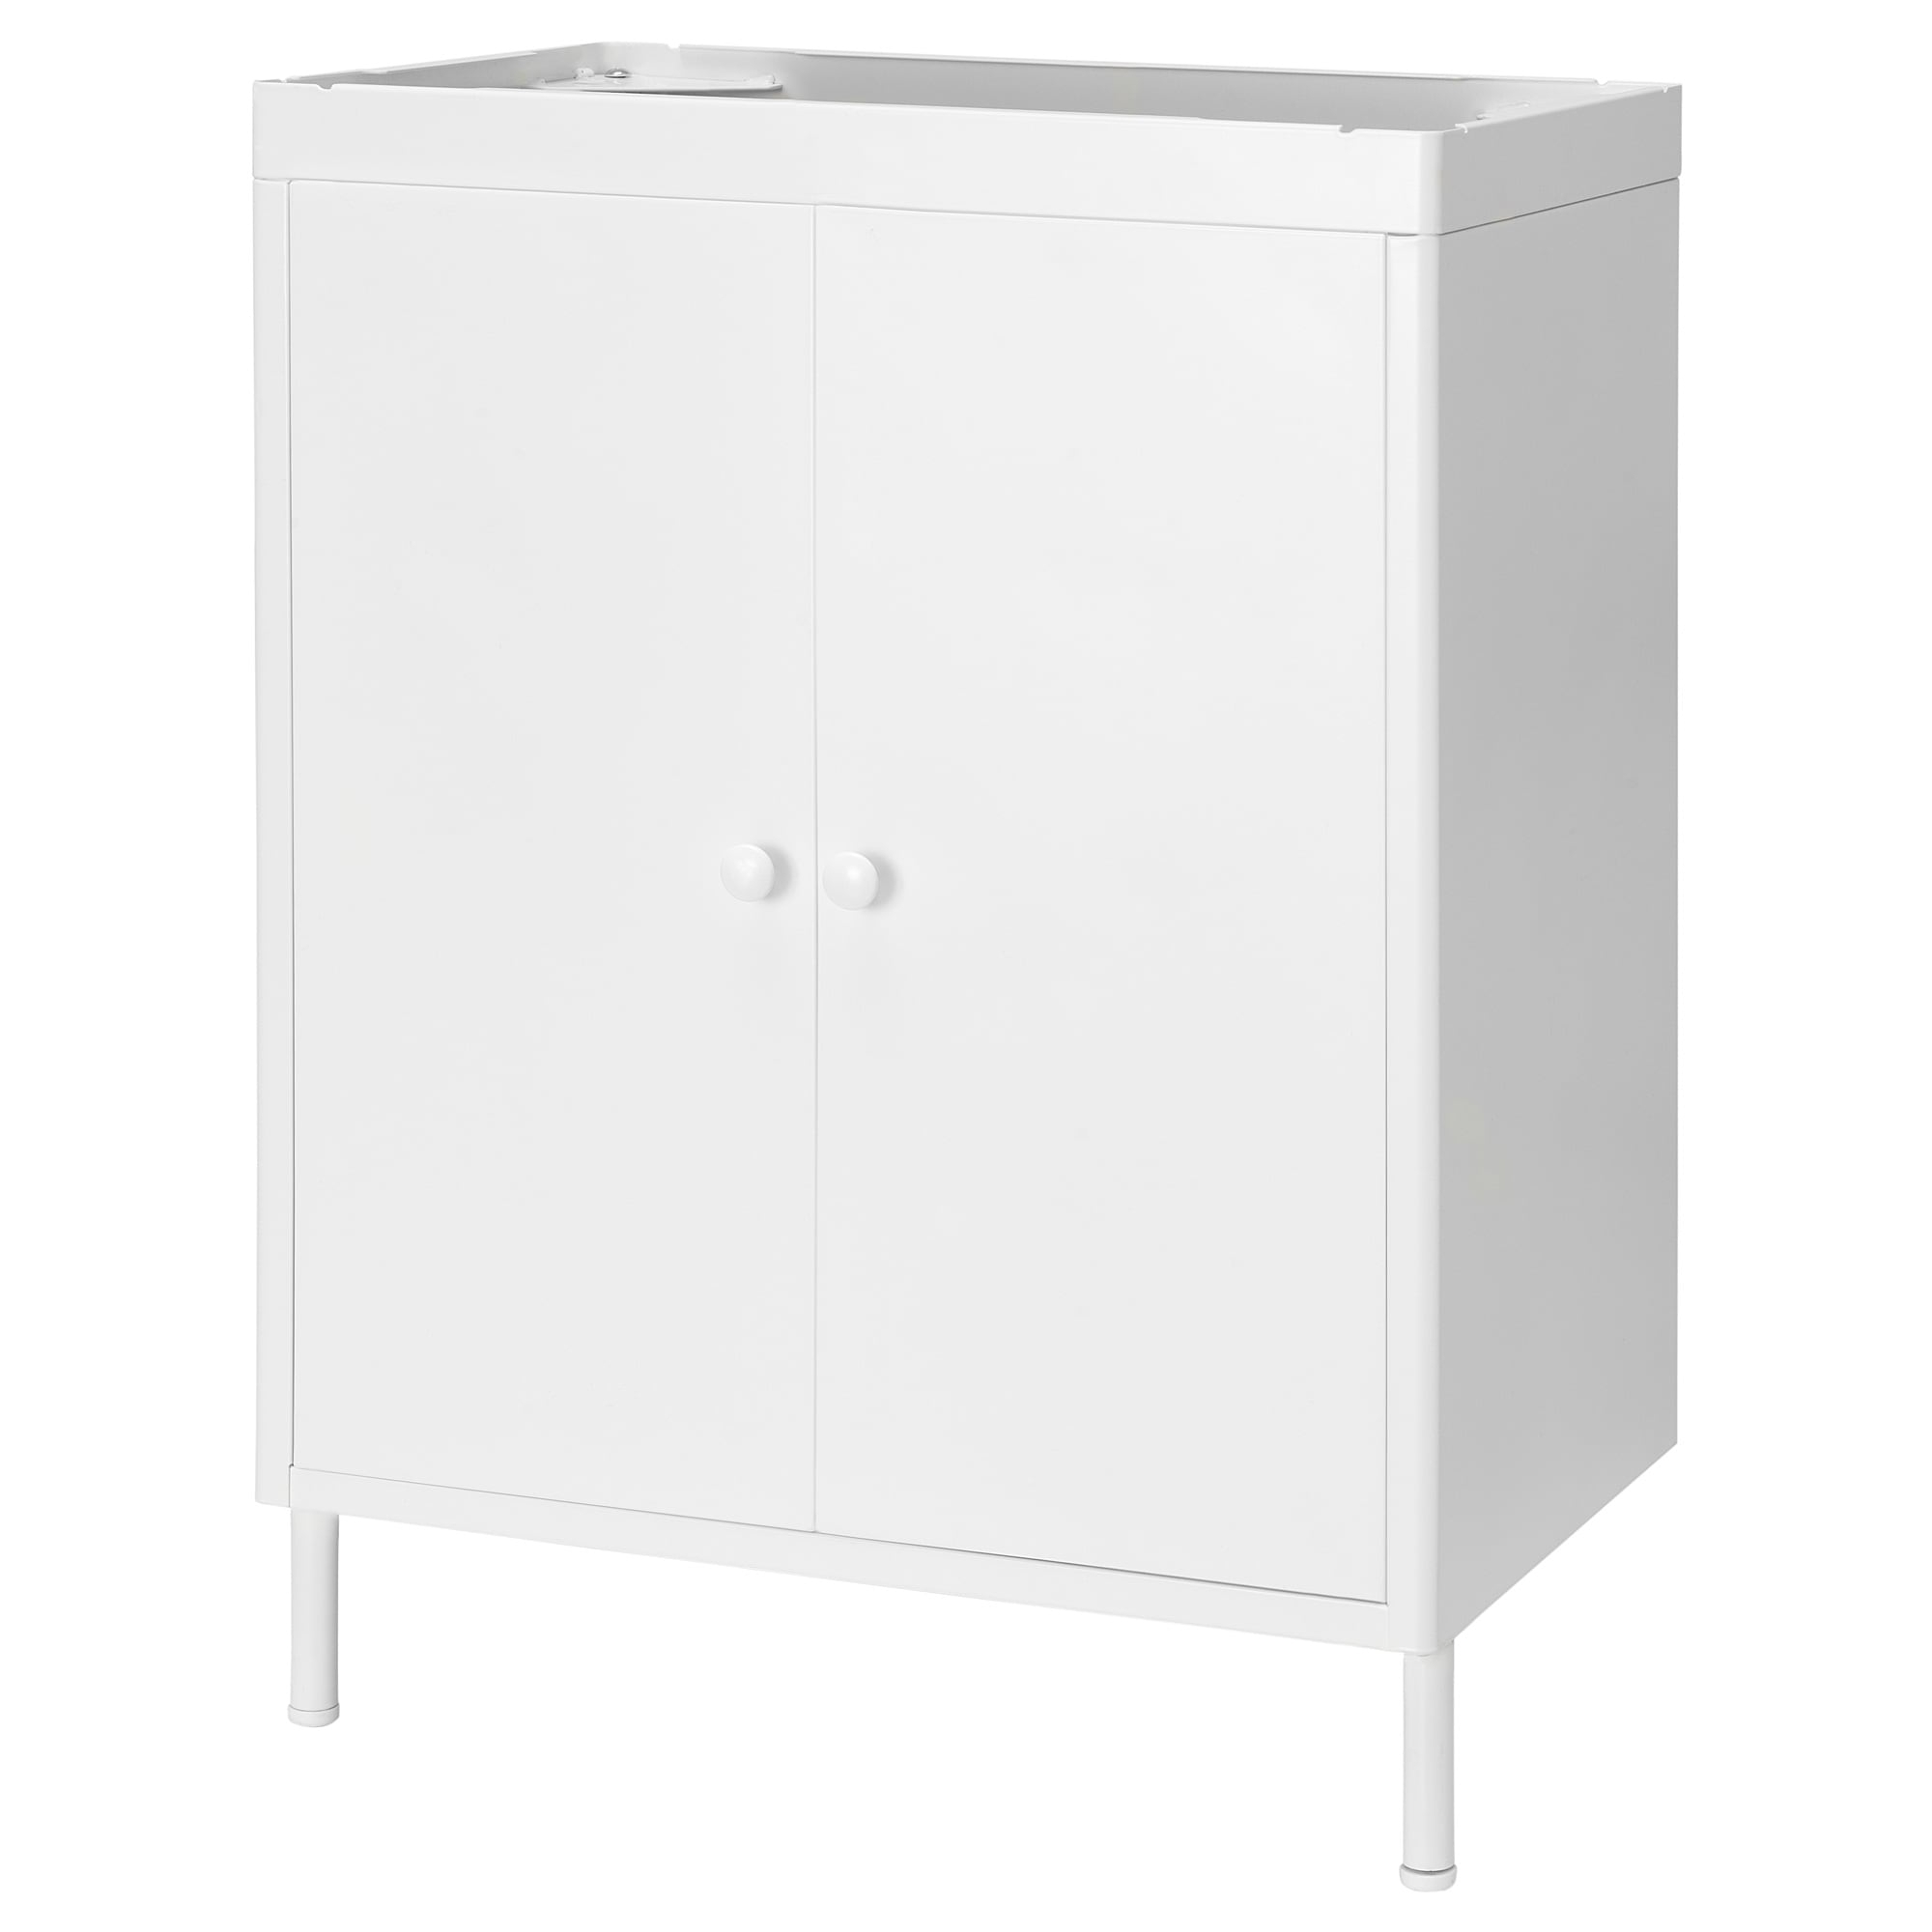 Dynan Wash-Basin Cabinet With 2 Doors - Ikea with White Wash 4-Door Galvanized Sideboards (Image 11 of 30)